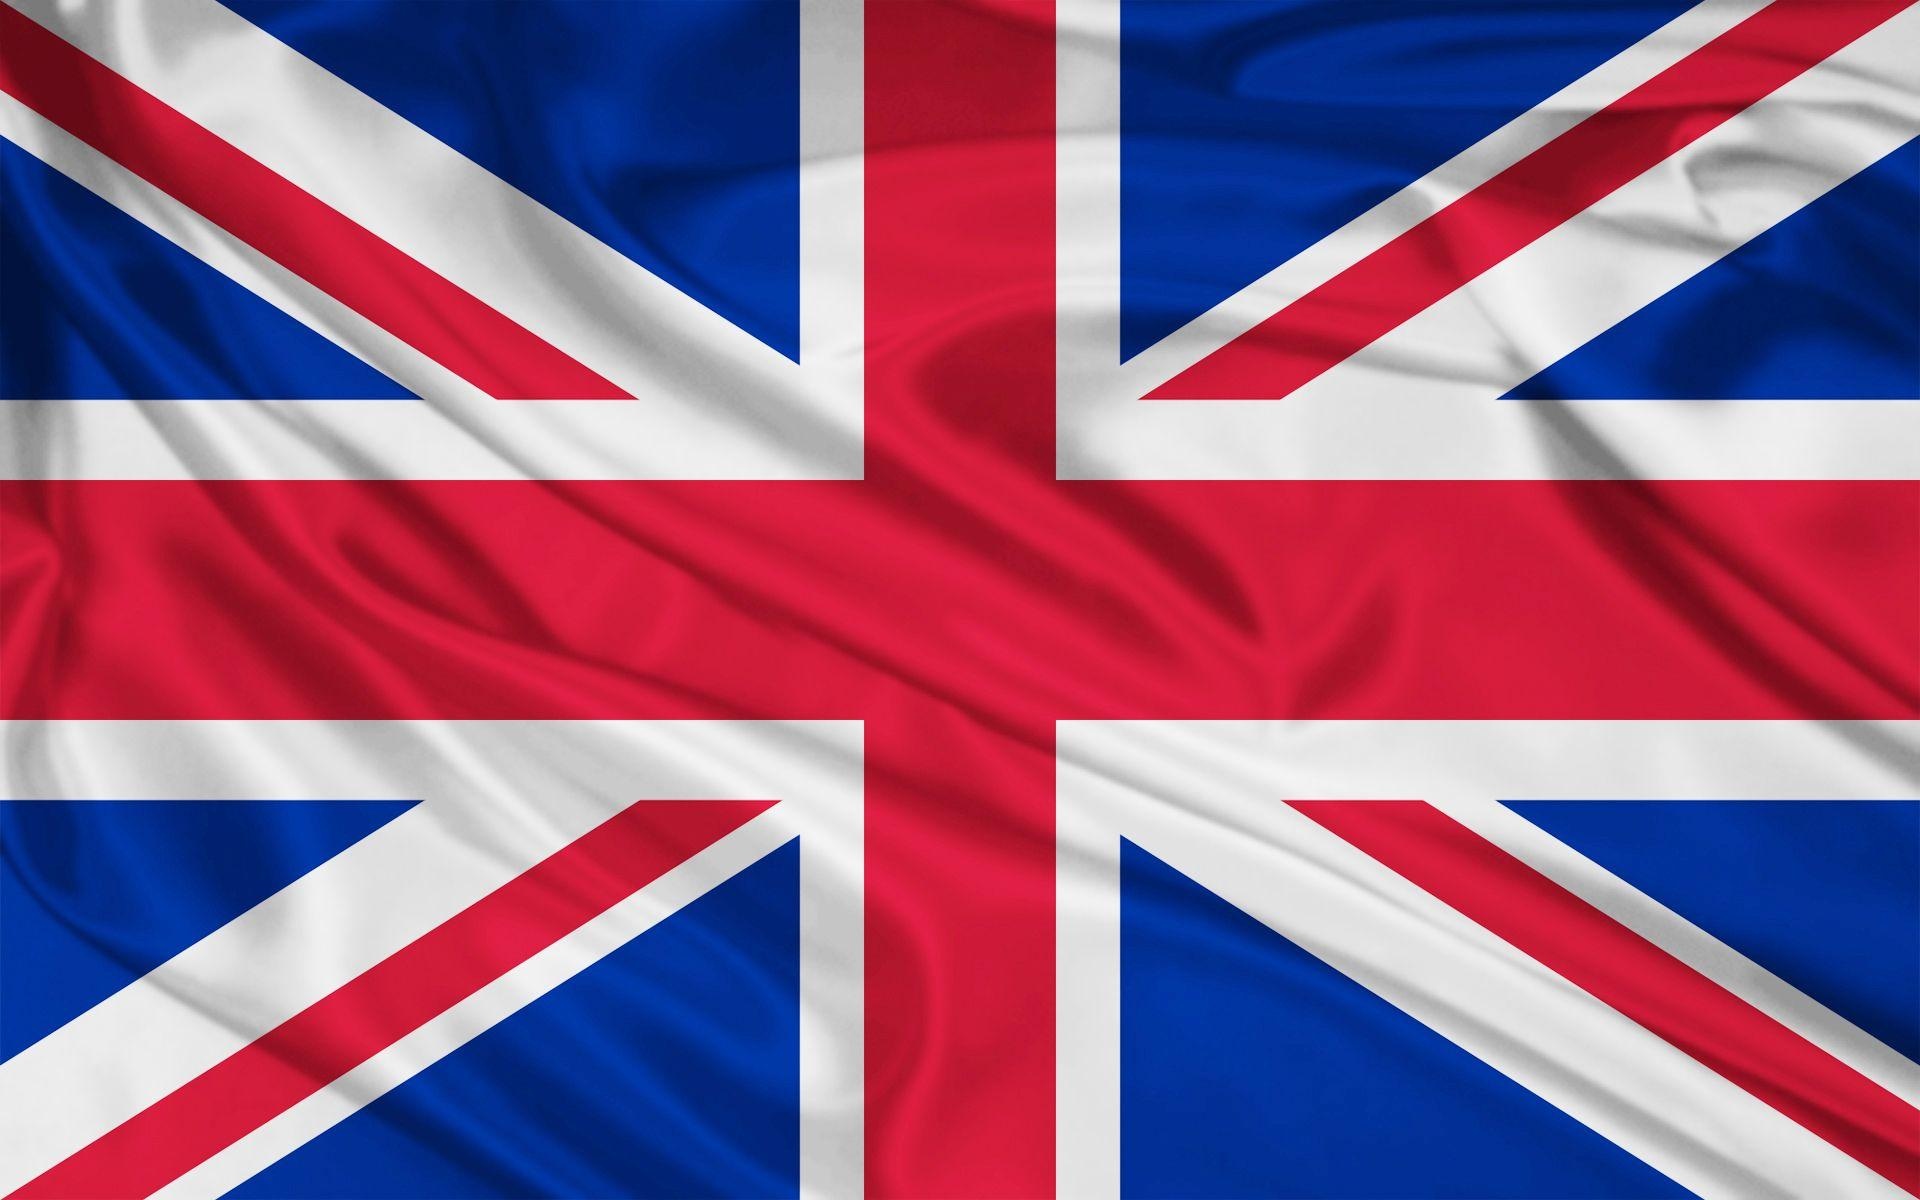 wallpapers backgrounds british - photo #40